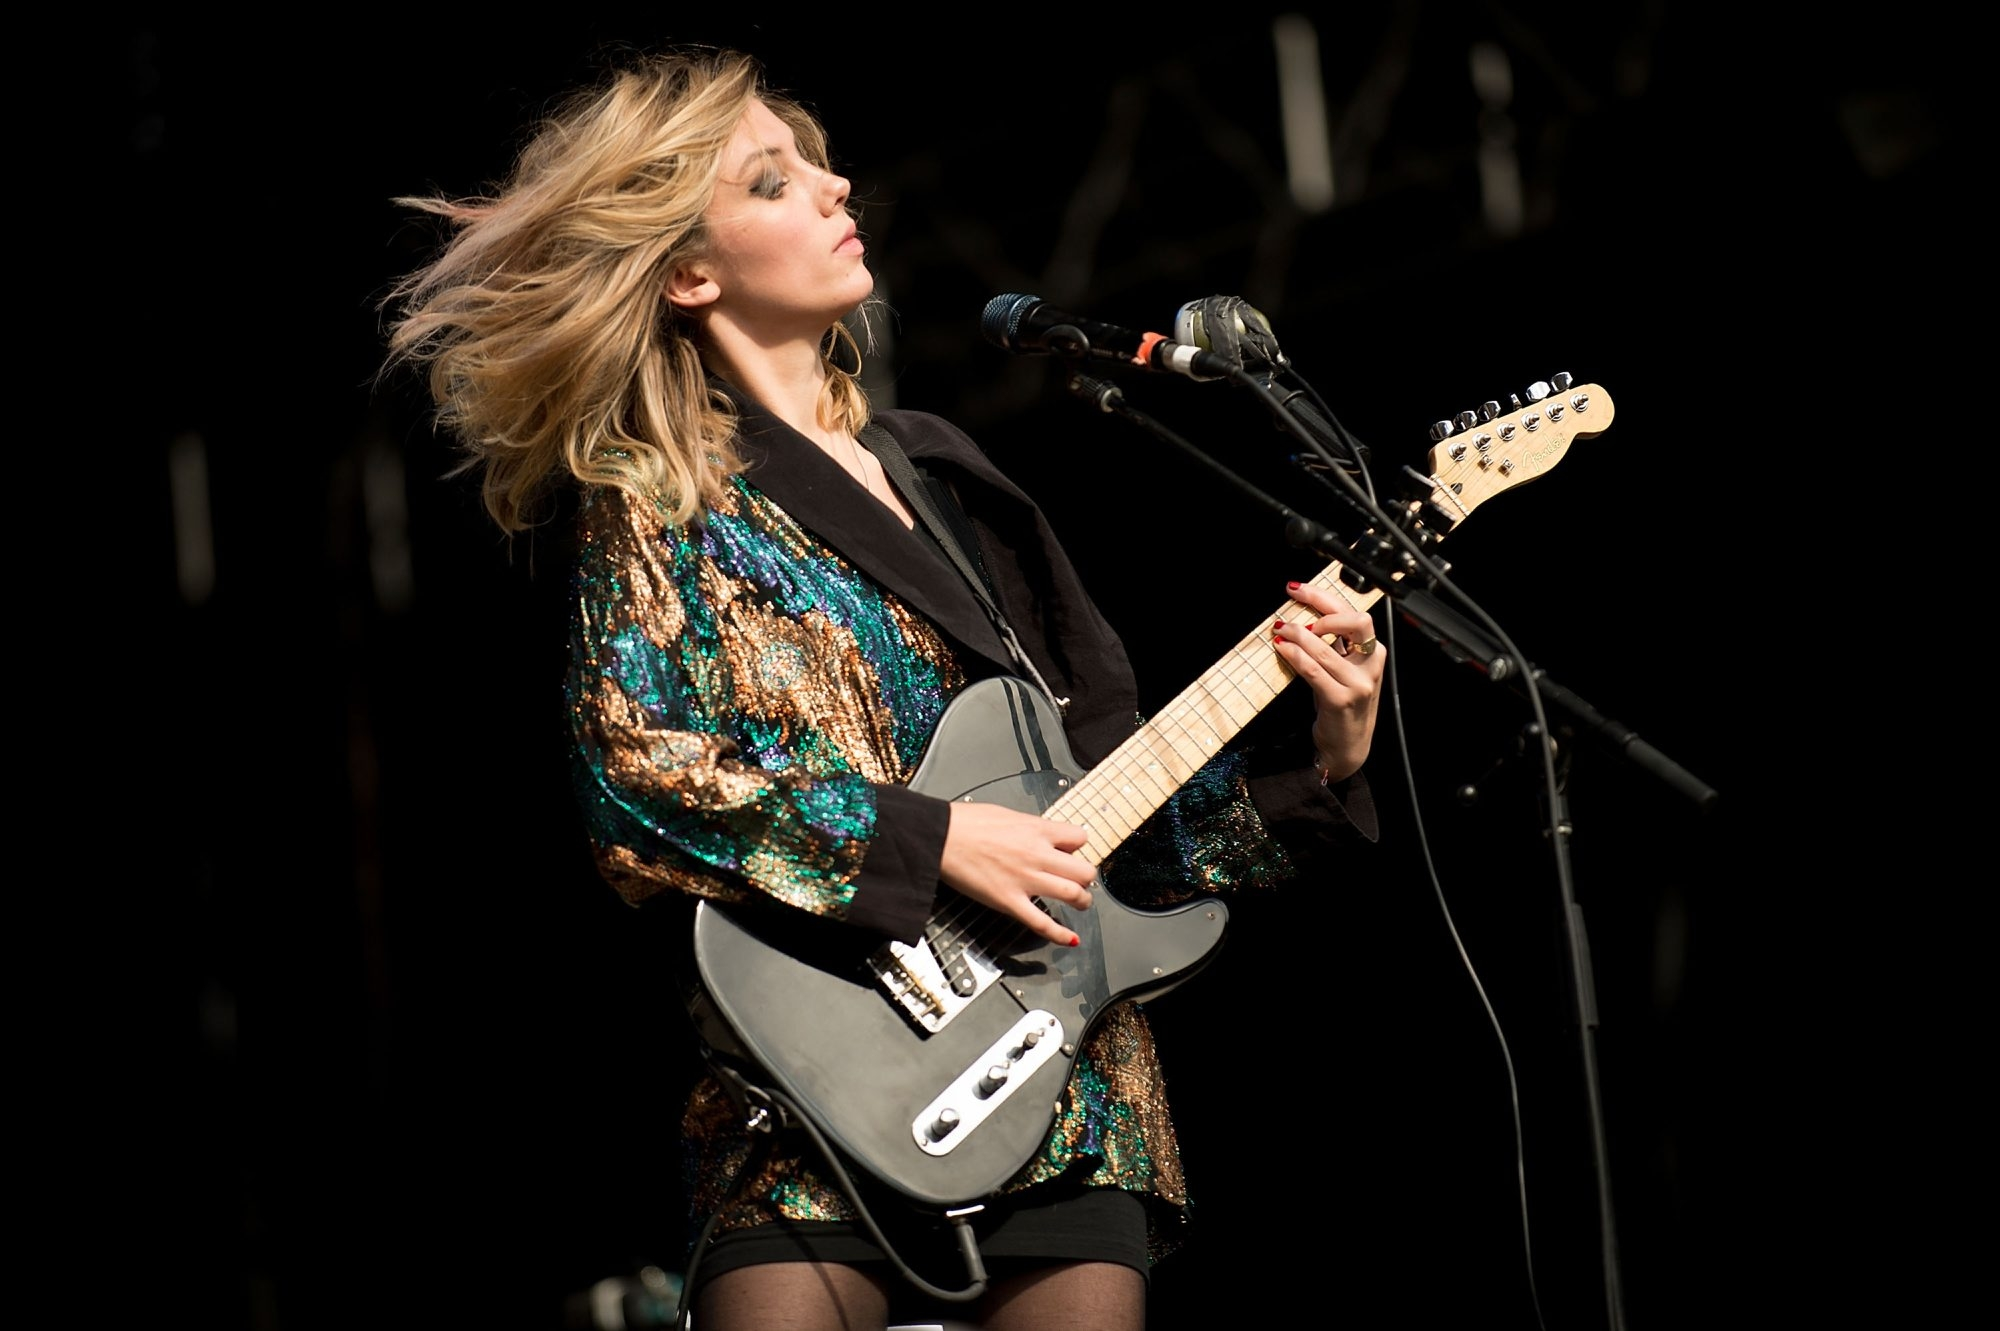 British buzz band Wolf Alice heads to Kerfuffle – The Buffalo News